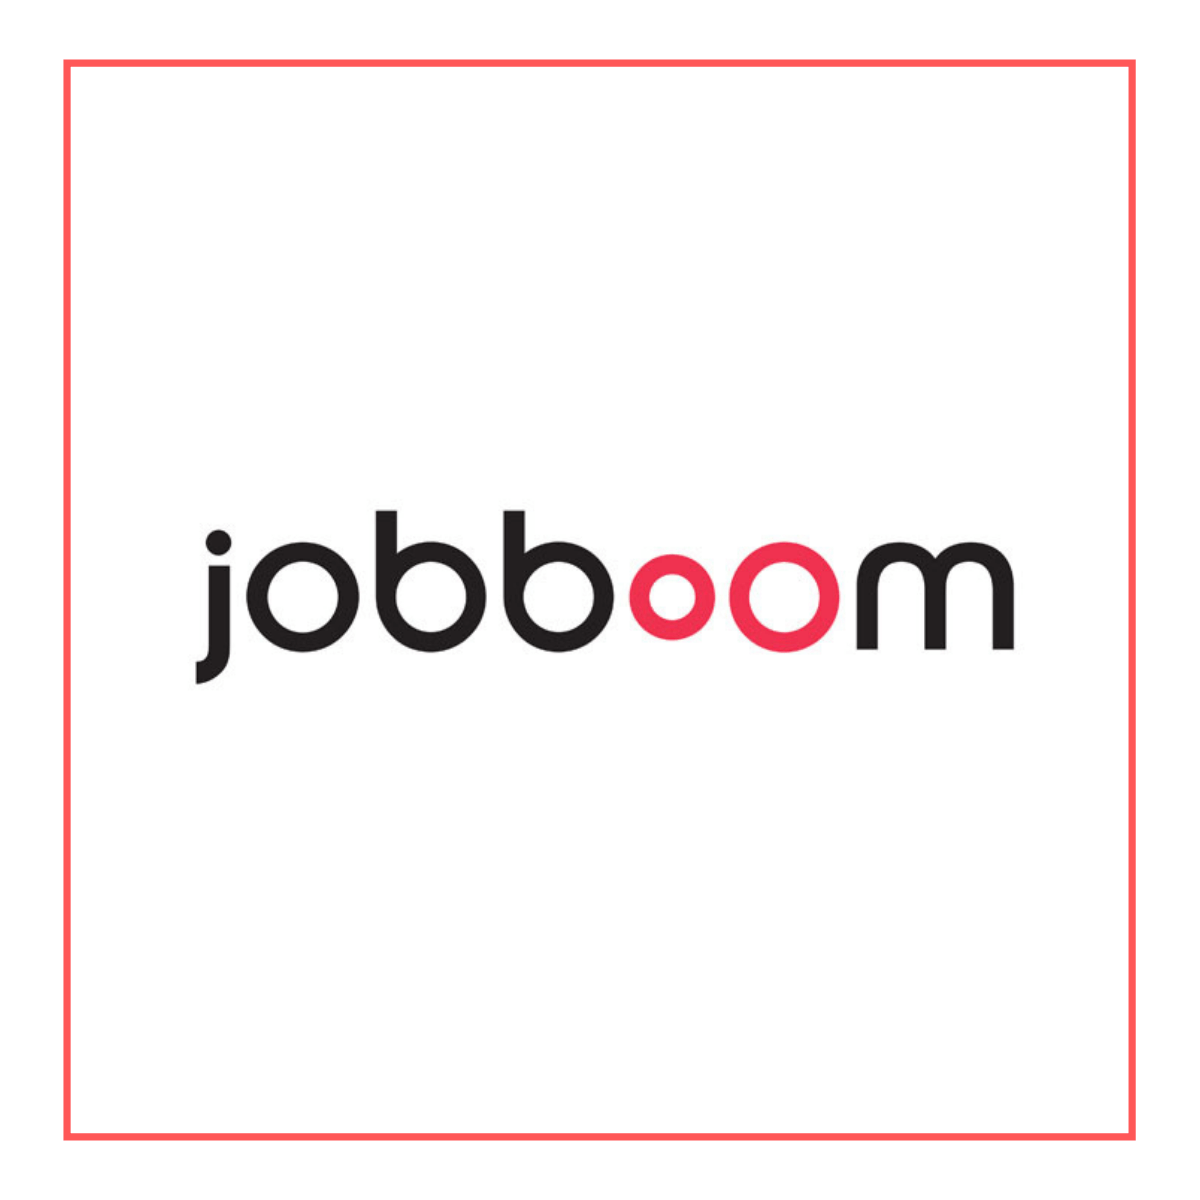 Jobboom: Everything You Need to Know